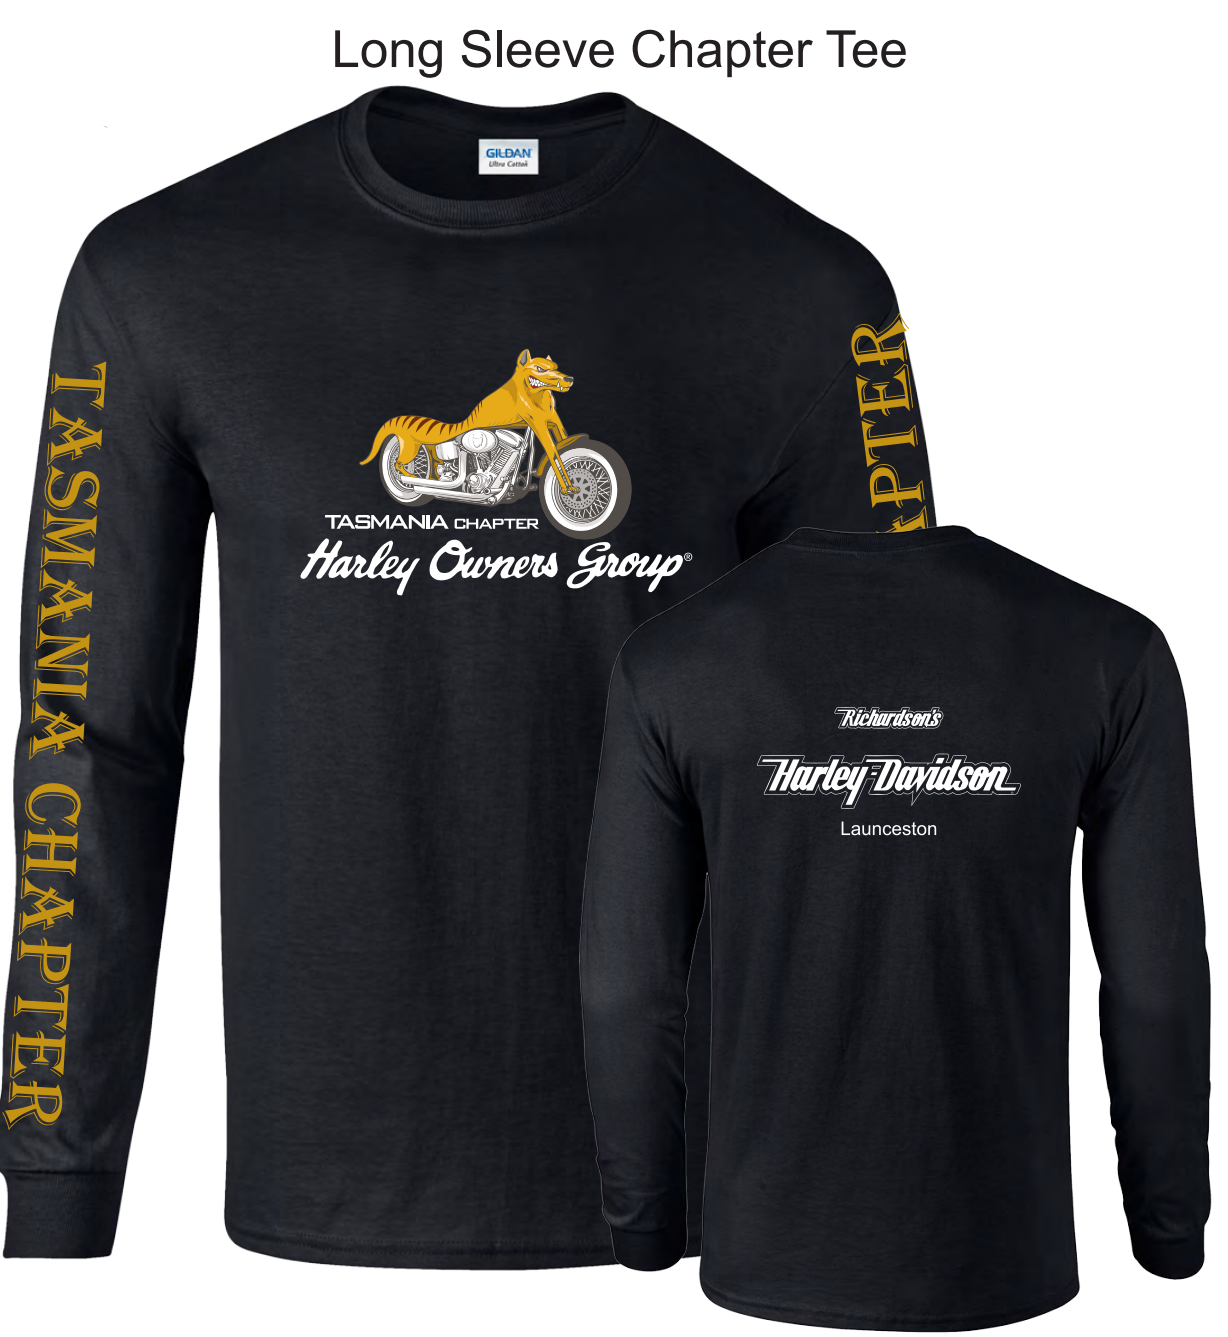 Tee Shirt - Long Sleeved Image